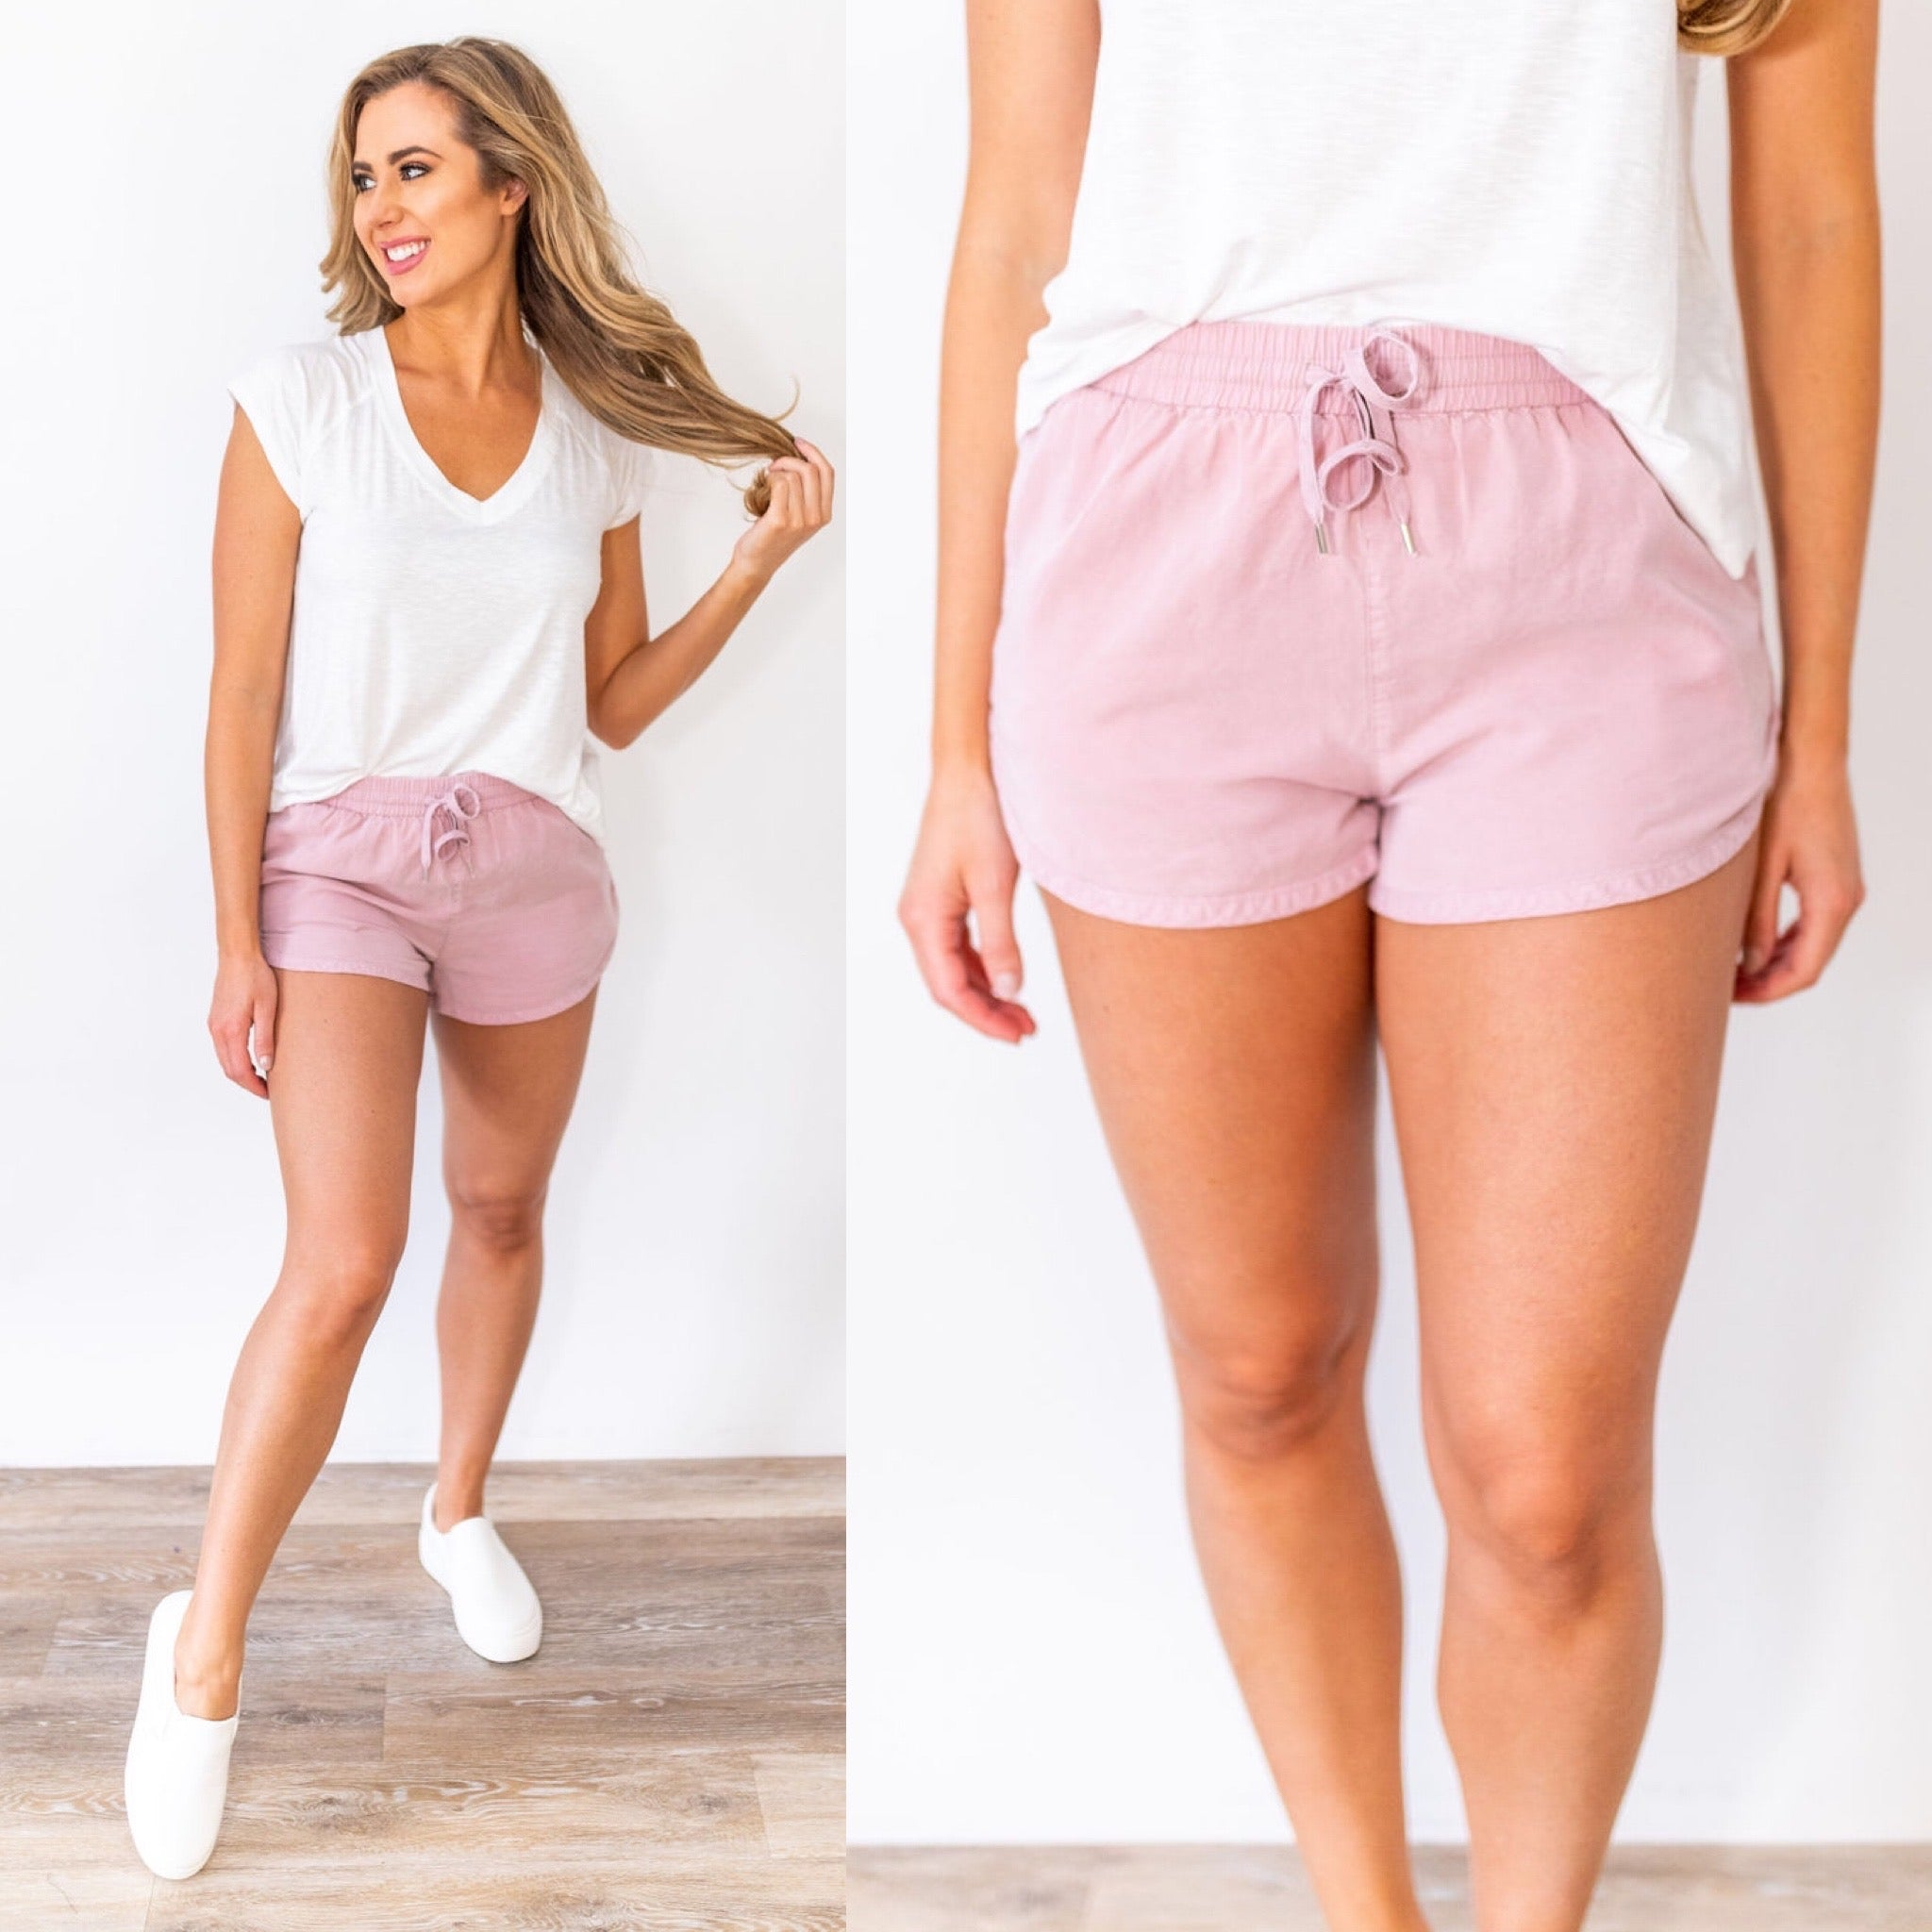 Summer Heat Drawstring Shorts